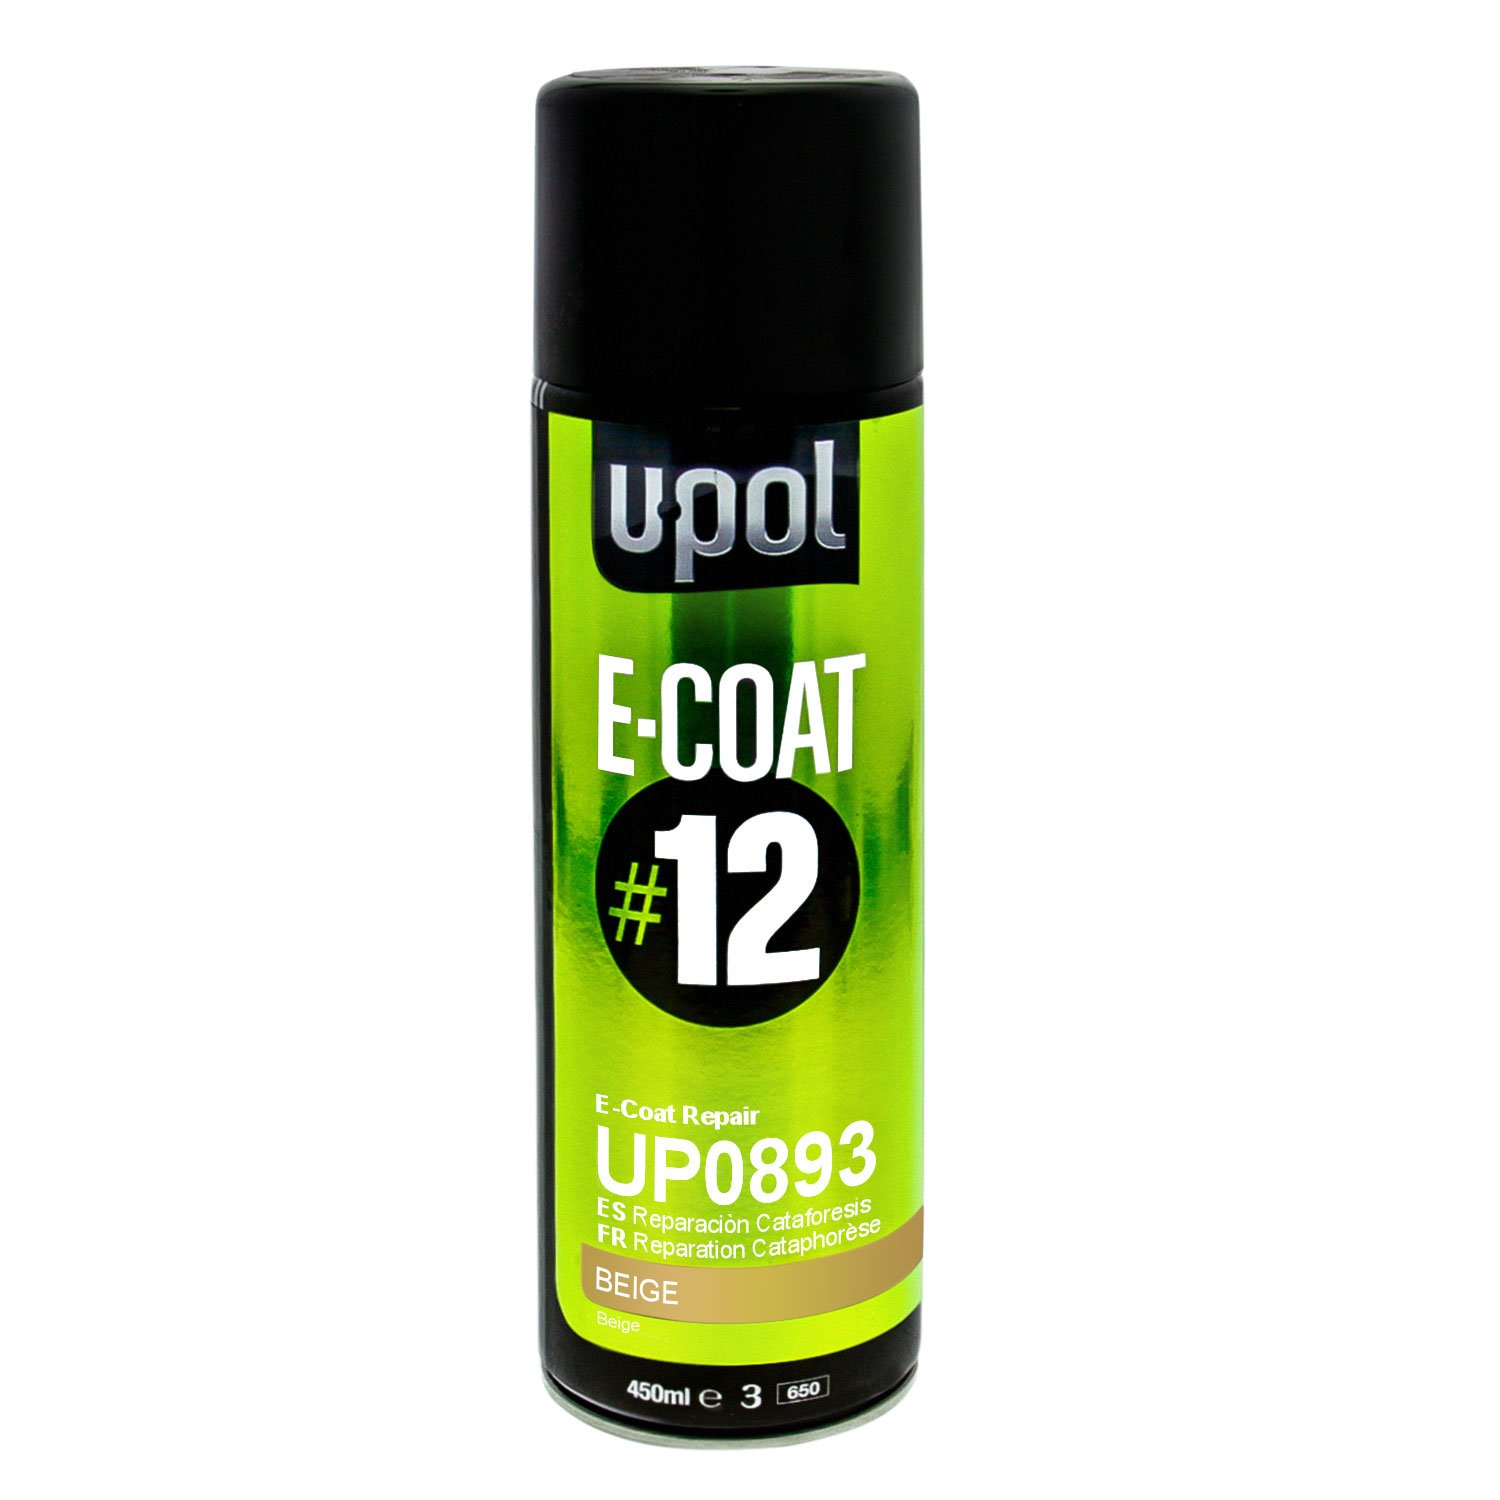 U-POL E-Coat Repair Aerosol (OLIVE GREEN)